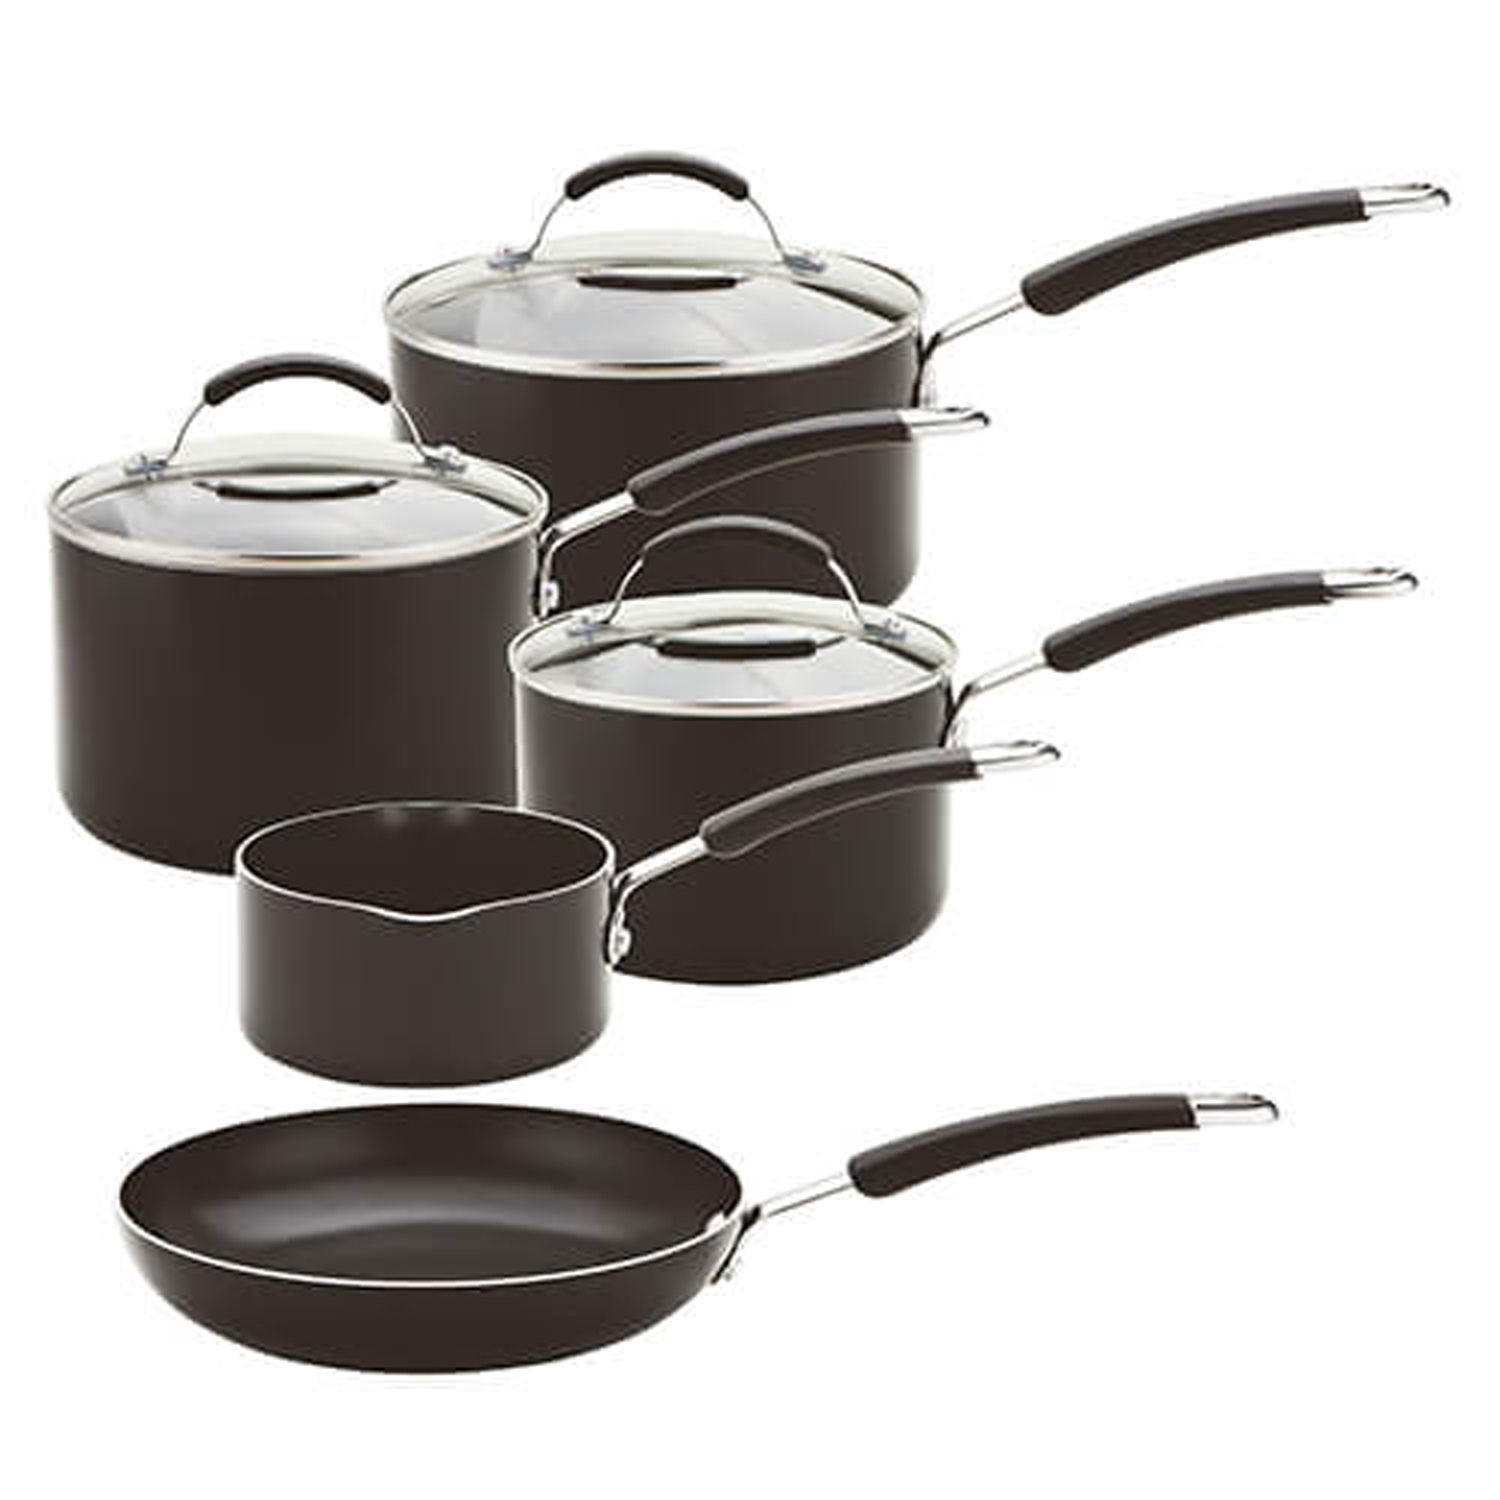 Image of Meyer 5 Piece Non-stick Induction Set, Black